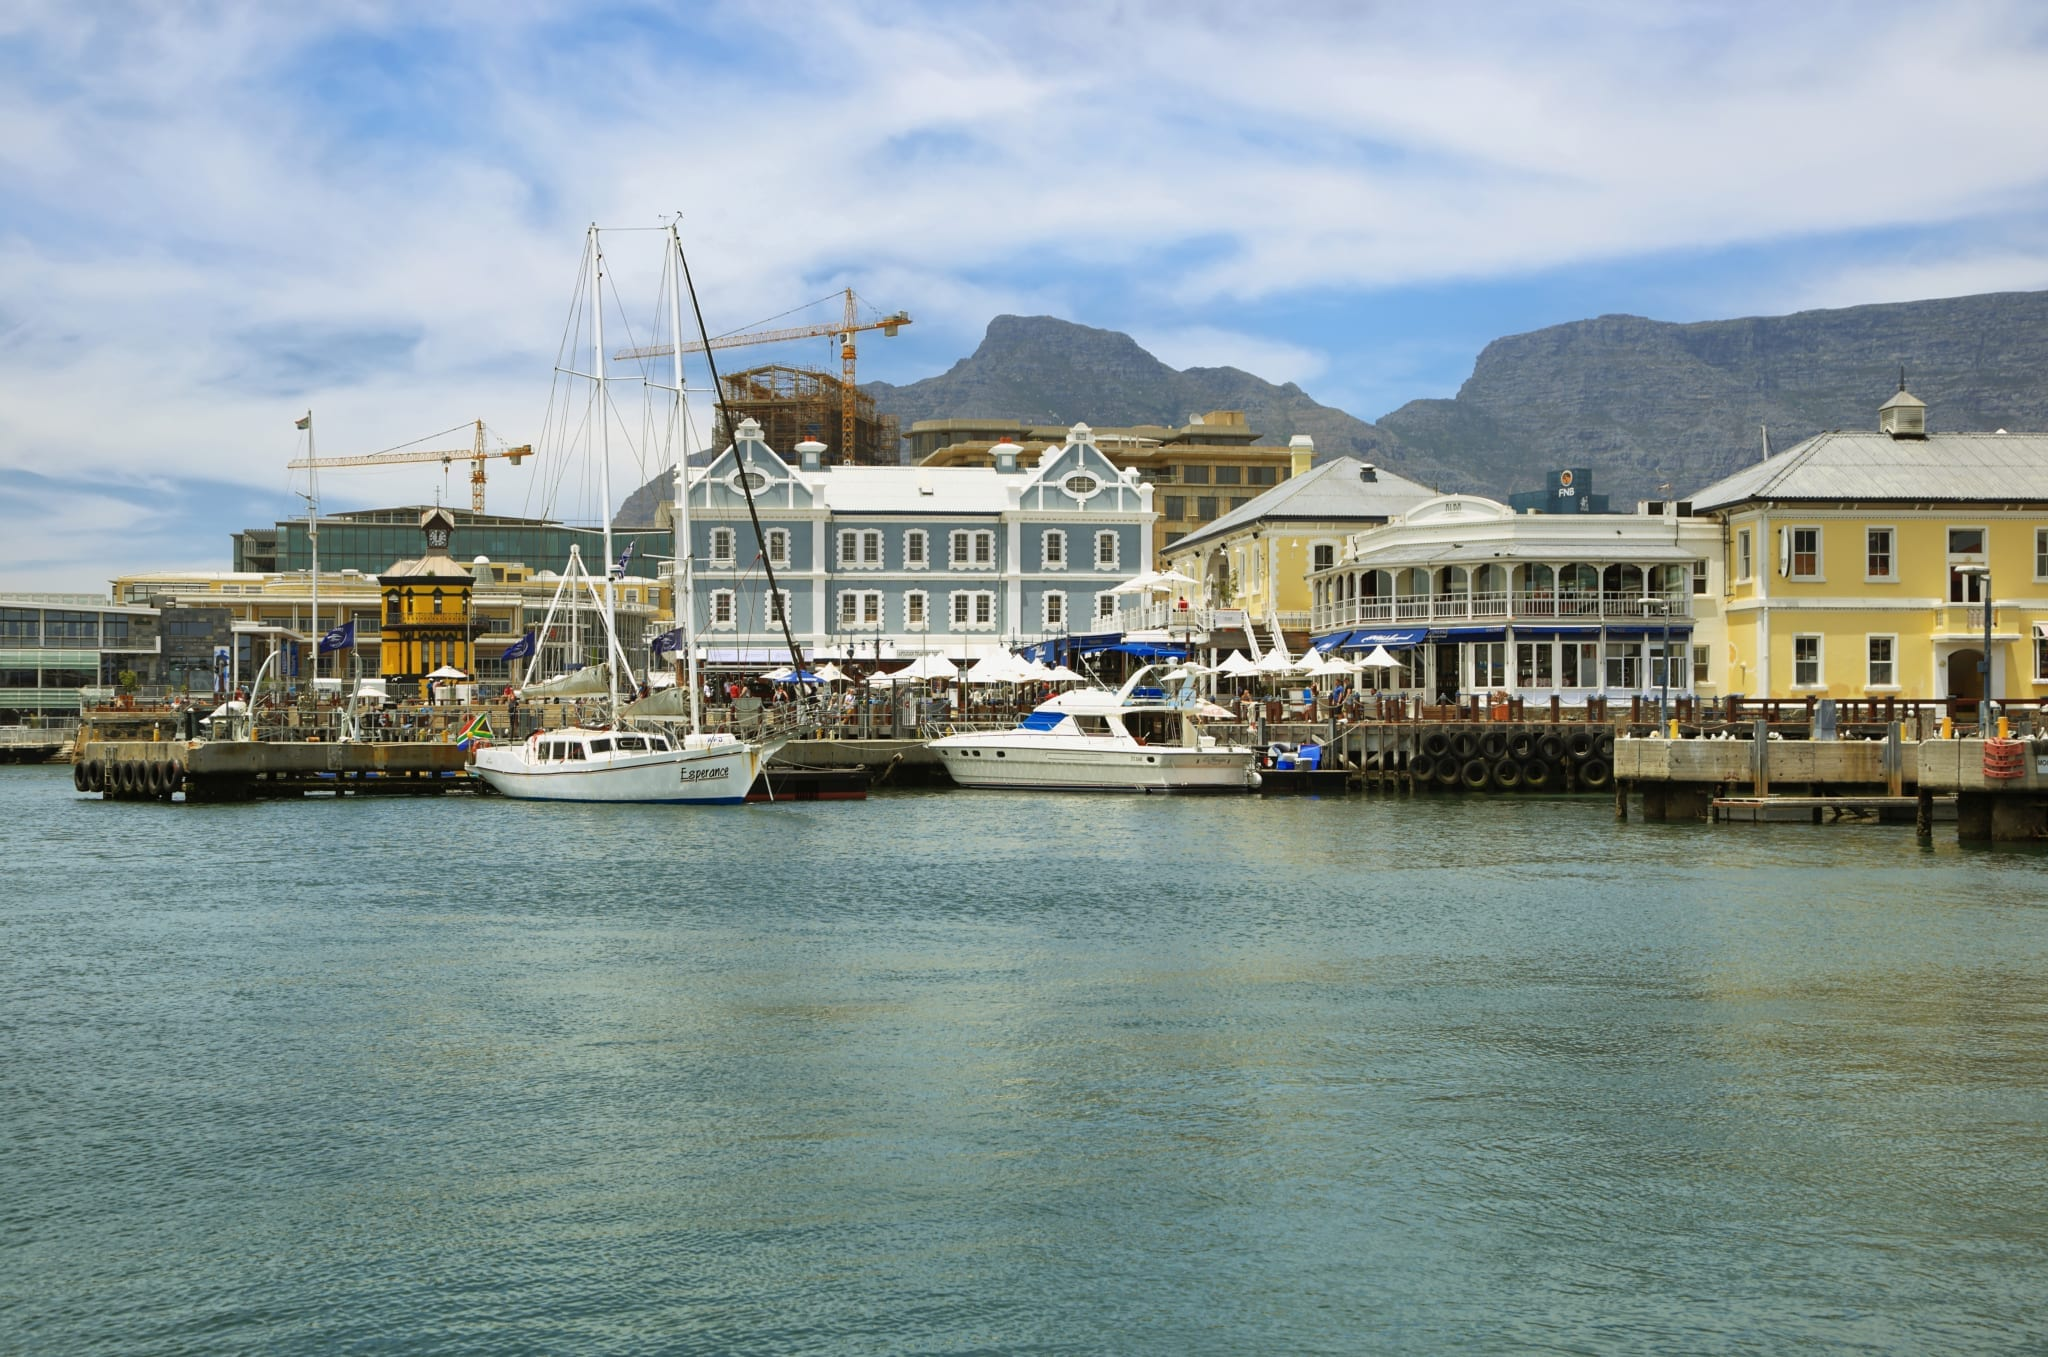 CAPE TOWN,SOUTH AFRICA-DECEMBER, 29:Victoria and Alfred Waterfront, harbor with recreation boats, shops, restaurants and Table Mountain on background on December 7, 2014  in Cape Town, South Africa.